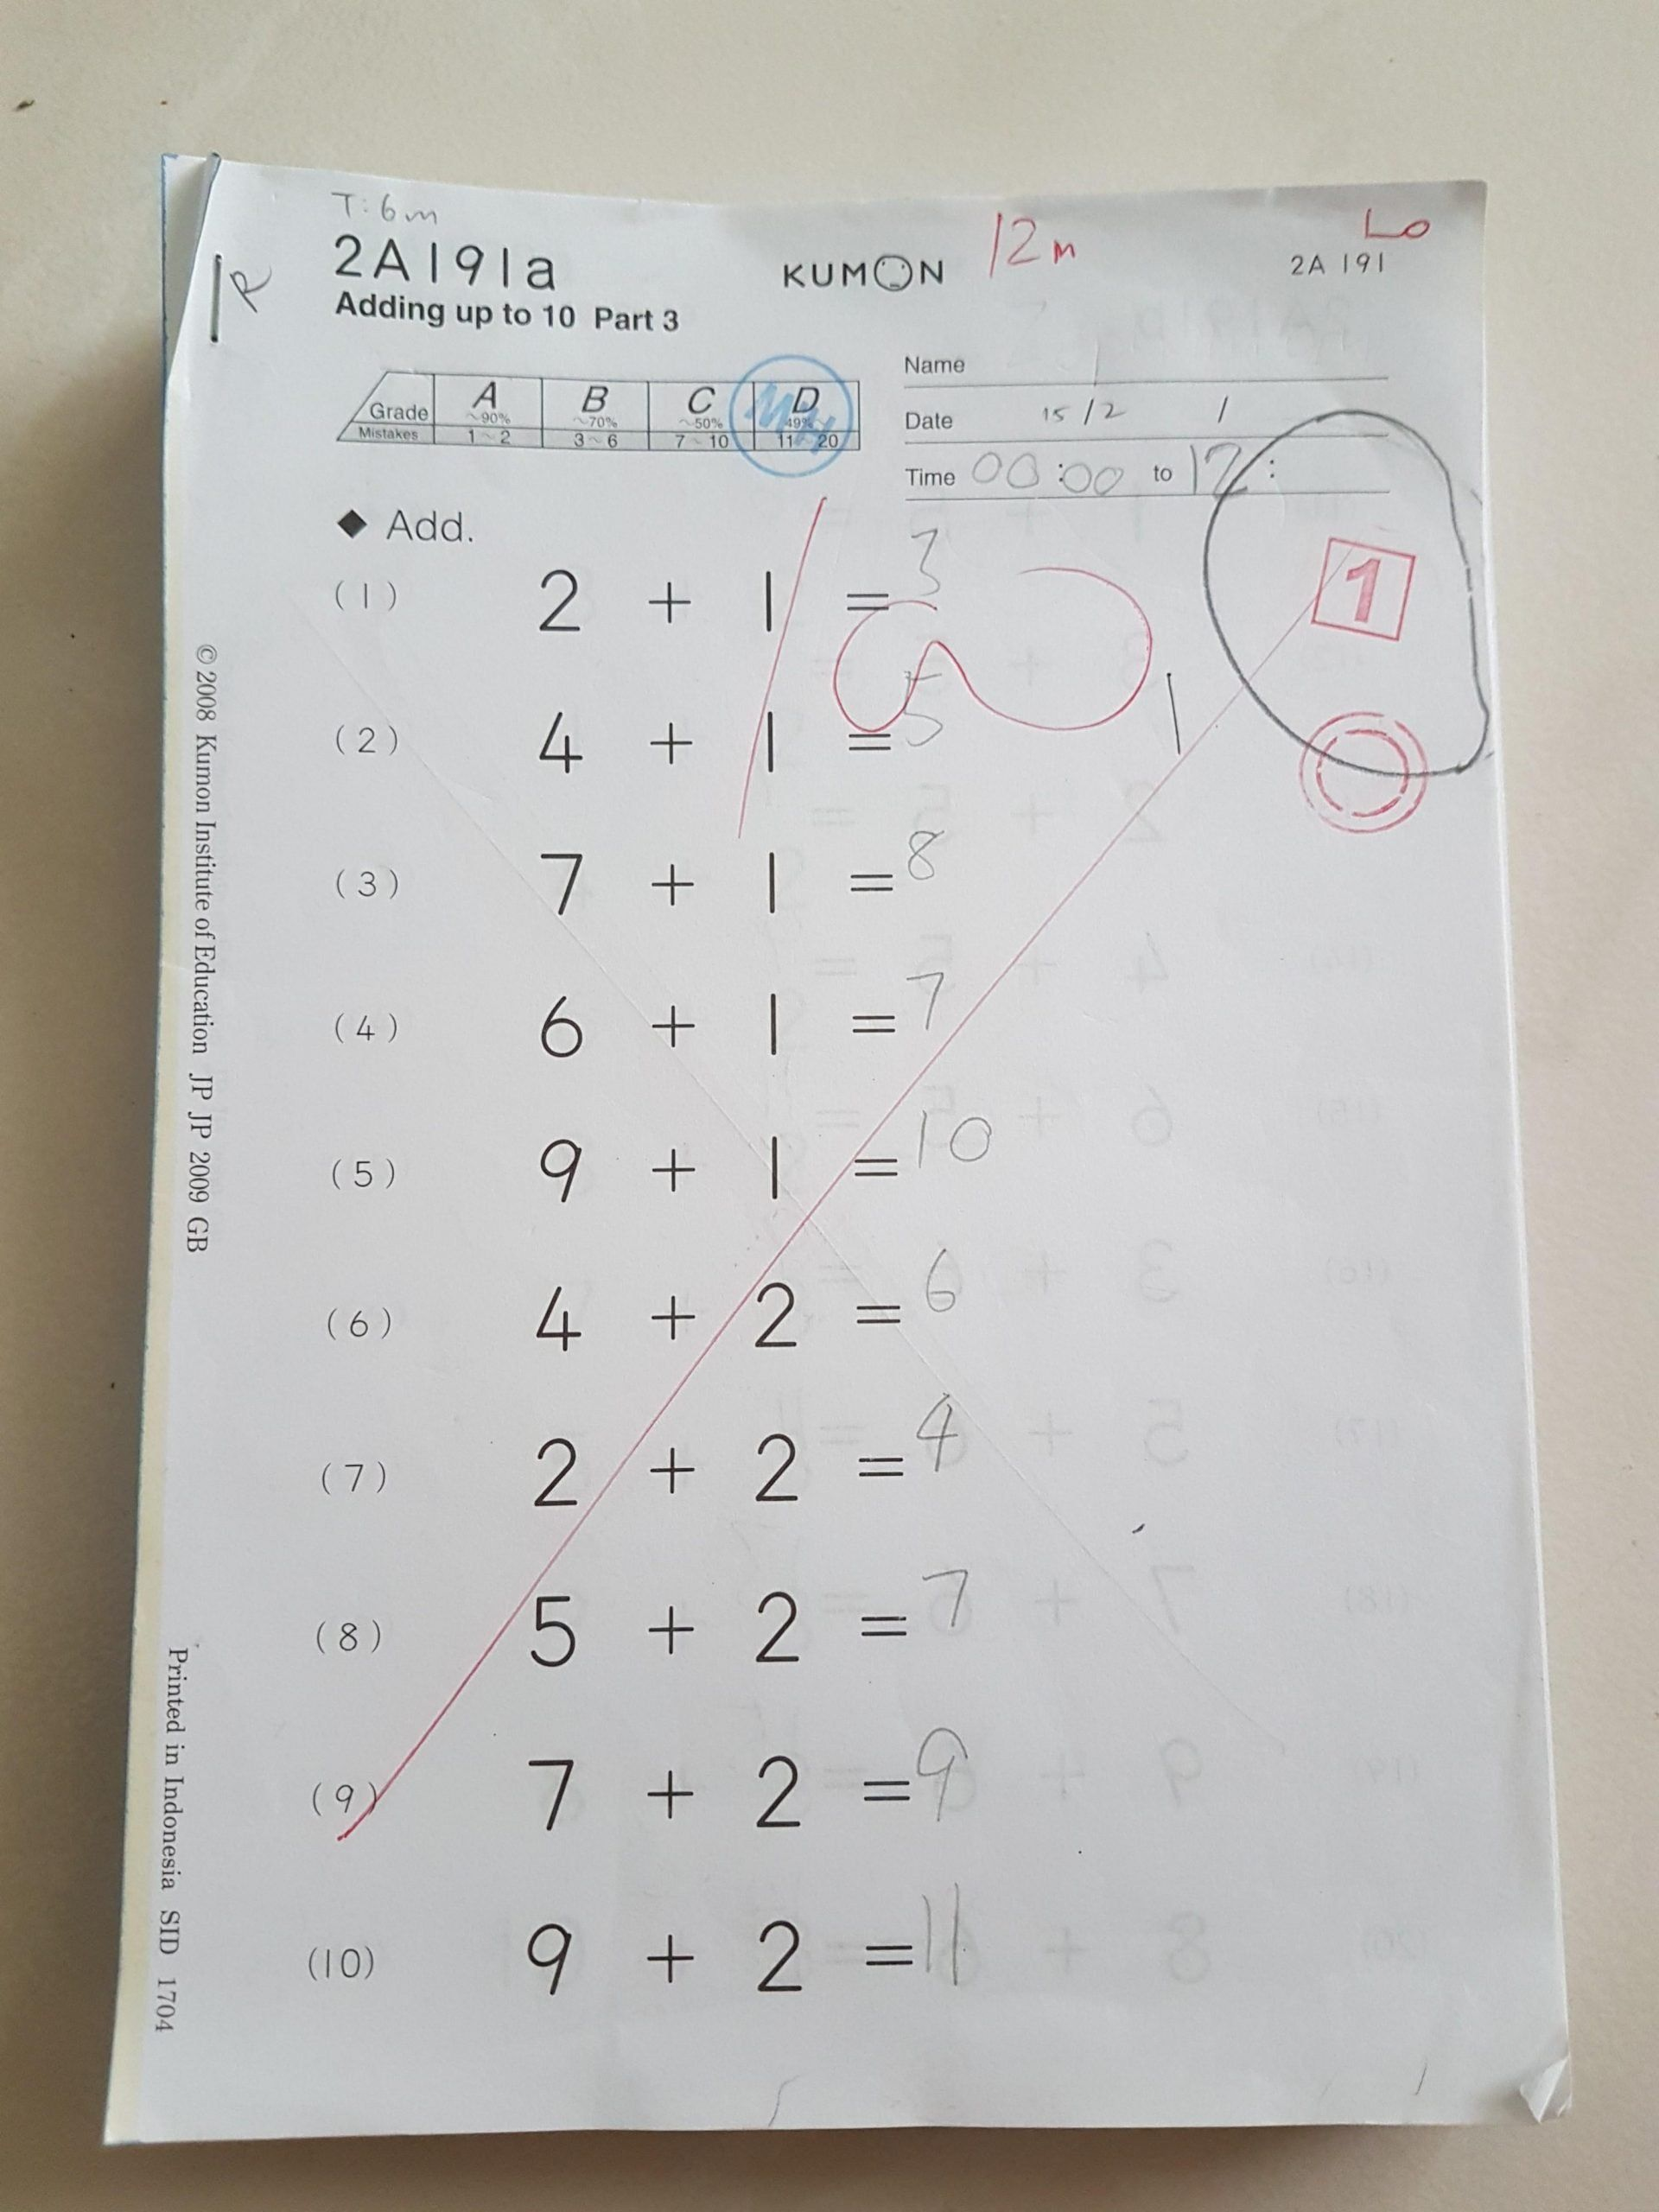 Kumon Maths Worksheets Printable 67 Free Kumon Math